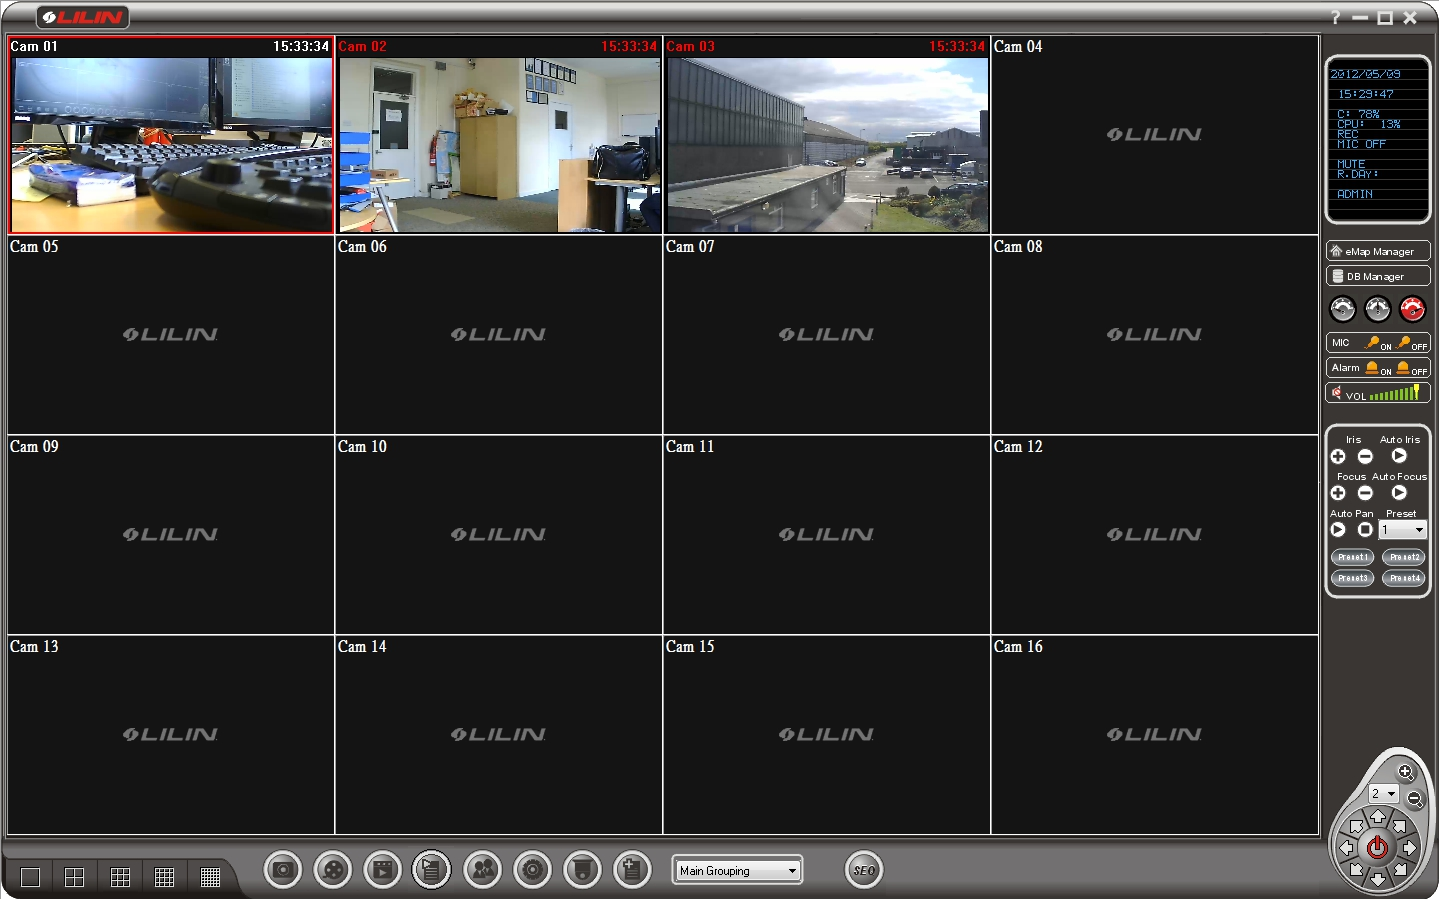 Review of merit lilin 39 s 72 channel vms cmx software for Security camera placement software